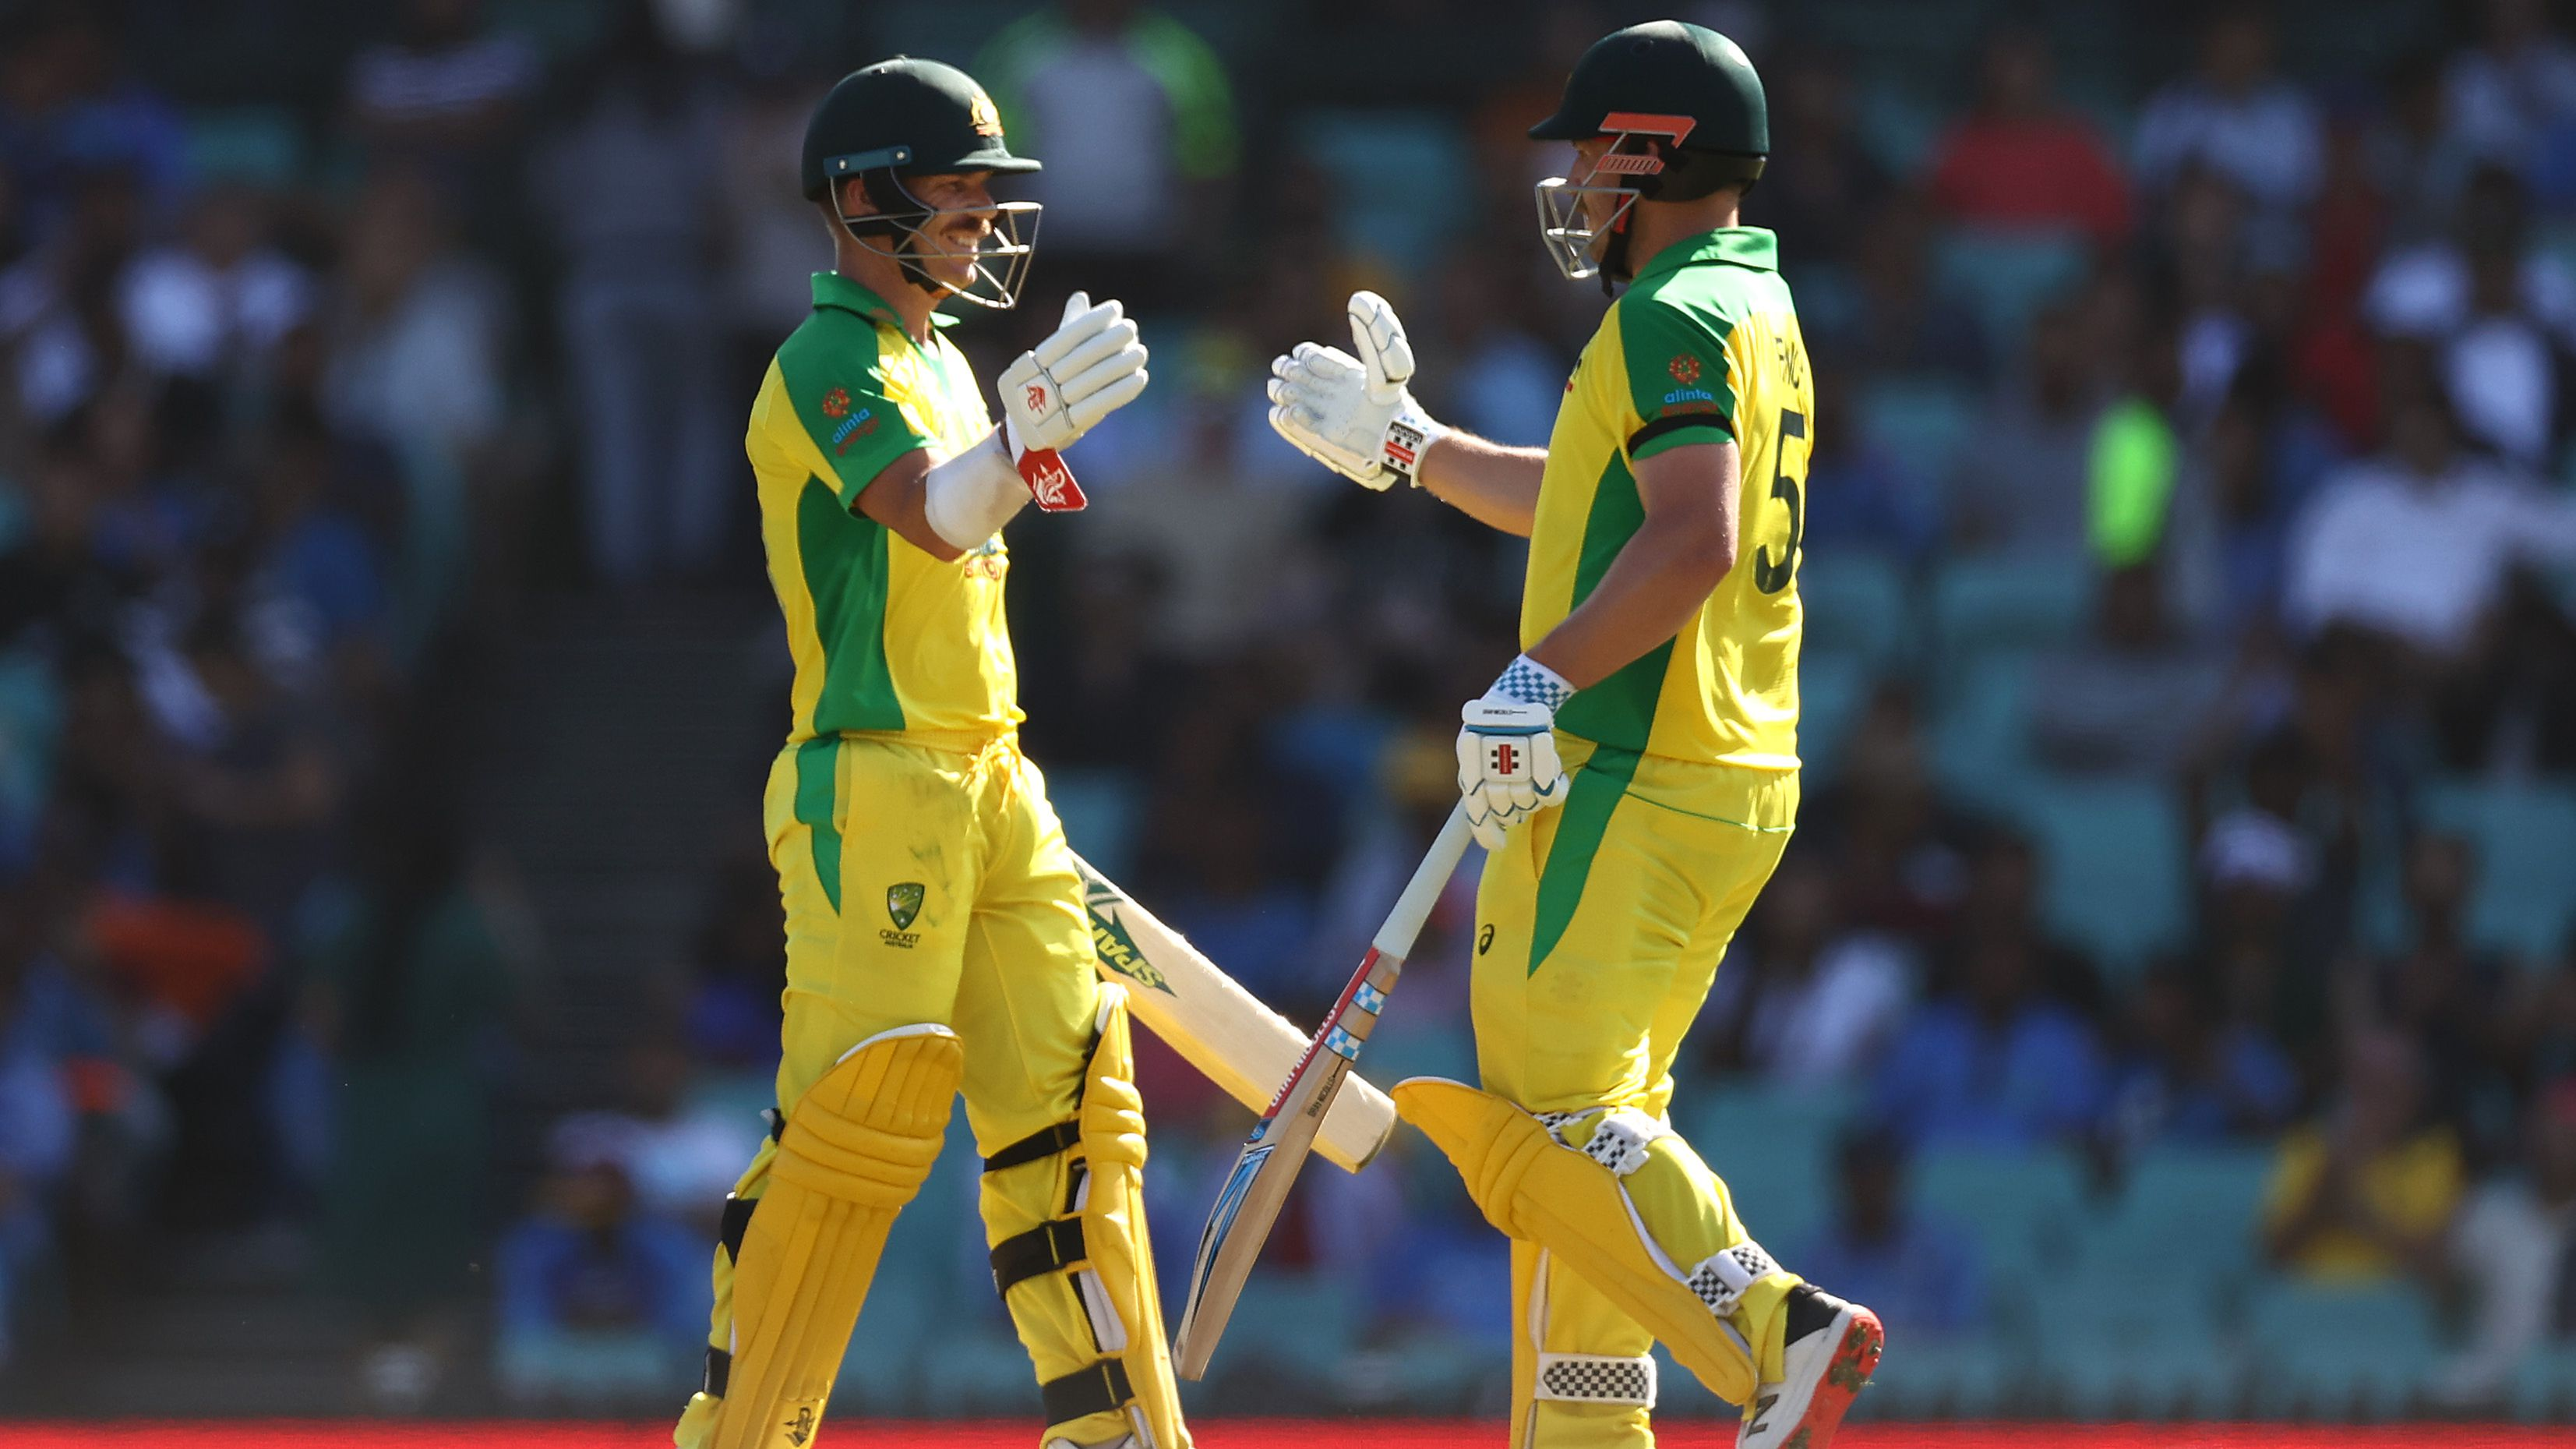 David Warner and Aaron Finch celebrate after reaching their 150 run partnership.